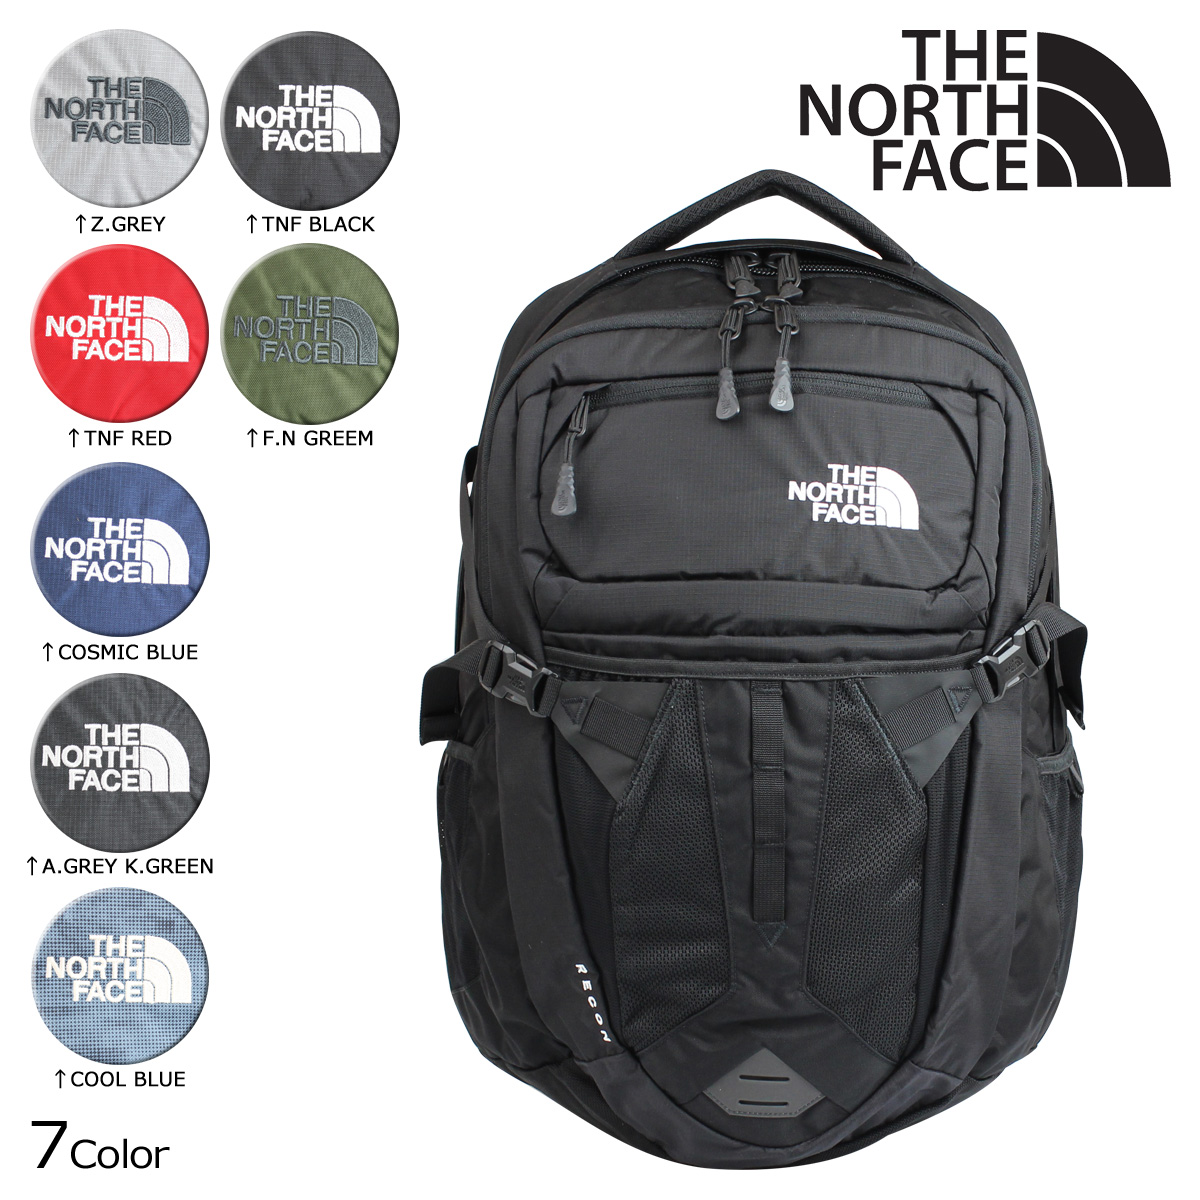 f576d81fd «Soon» «10/7 days stock» north face THE NORTH FACE mens ladies rucksack  backpack CLG4 31L 7 color RECON BACKPACK [10/7 new in stock]